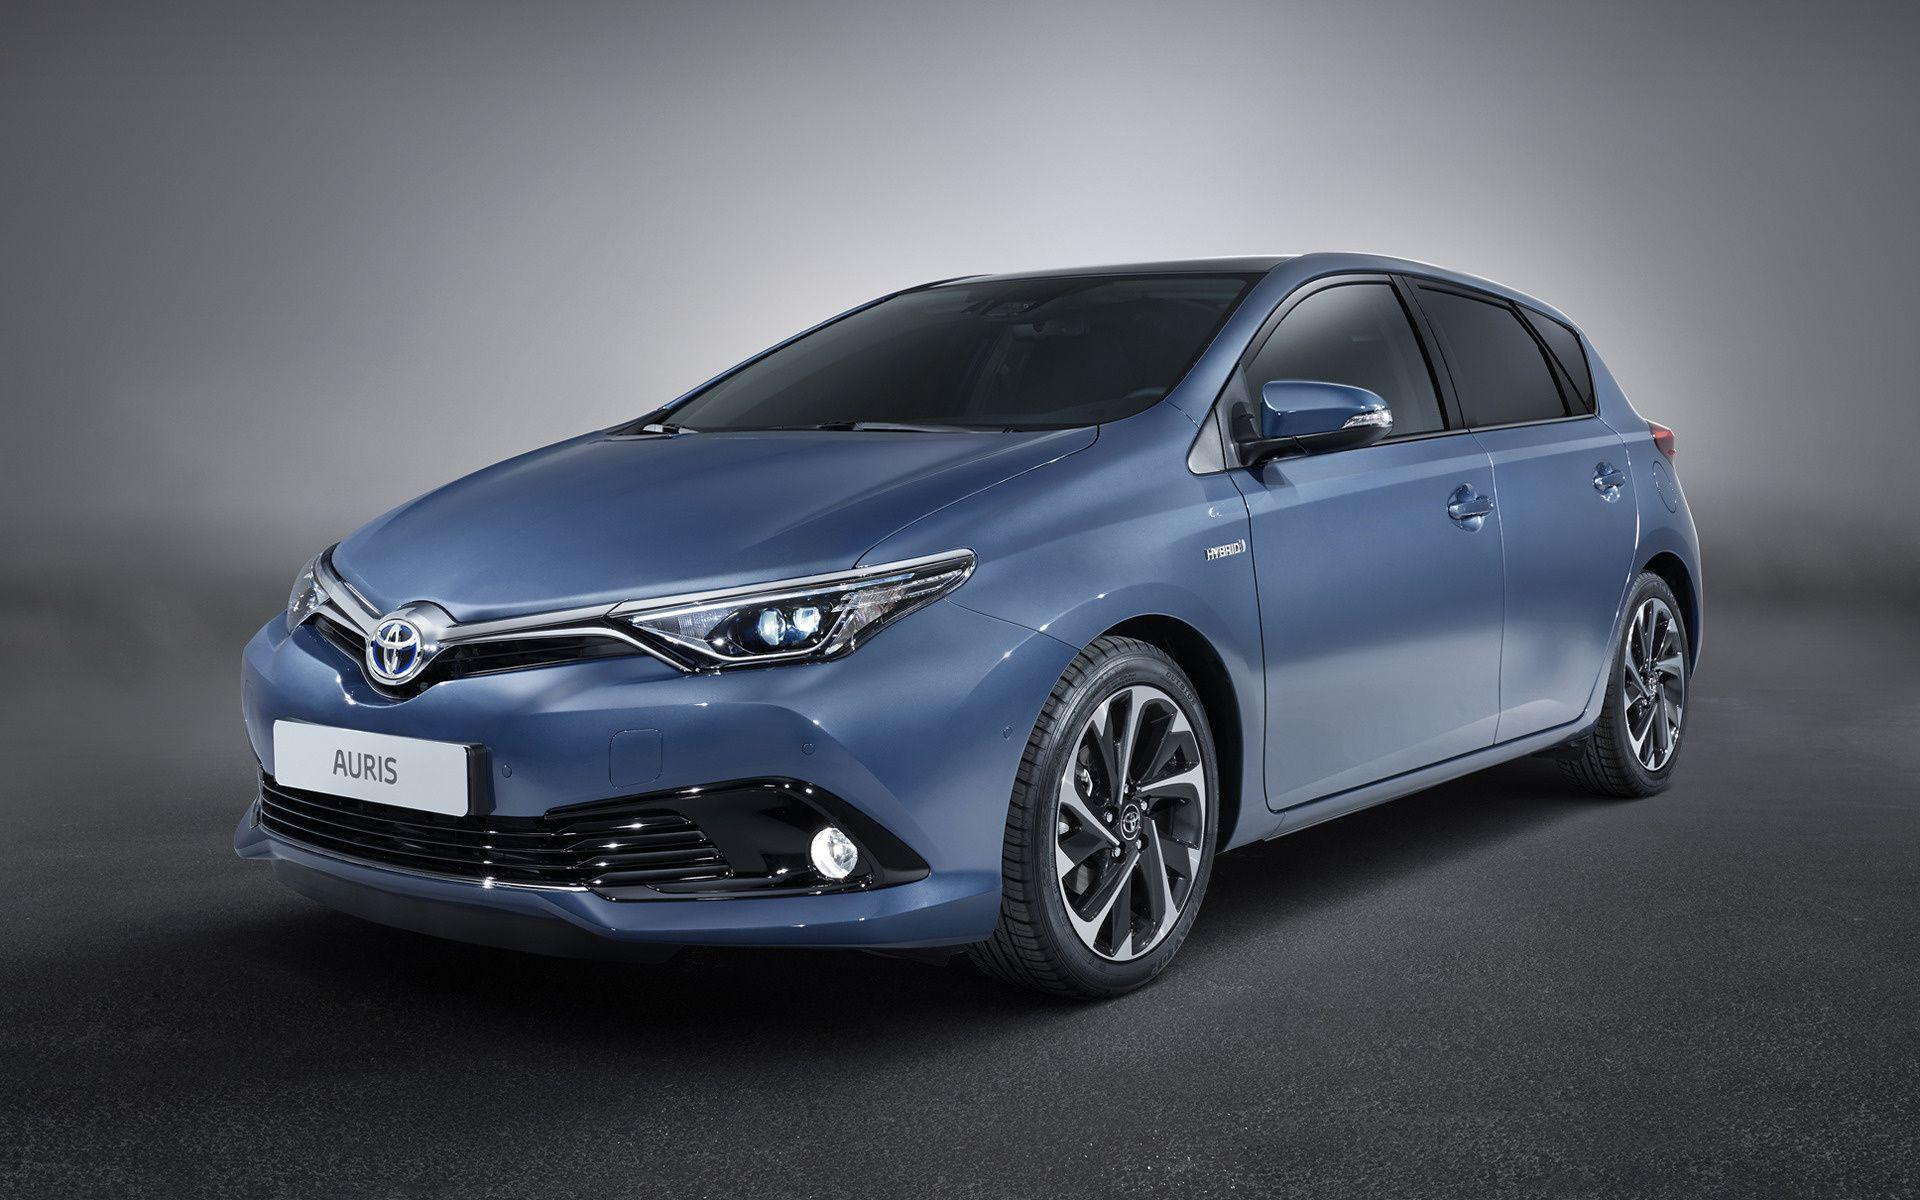 Toyota Auris Hybrid (2015) Wallpapers and HD Images - Car Pixel